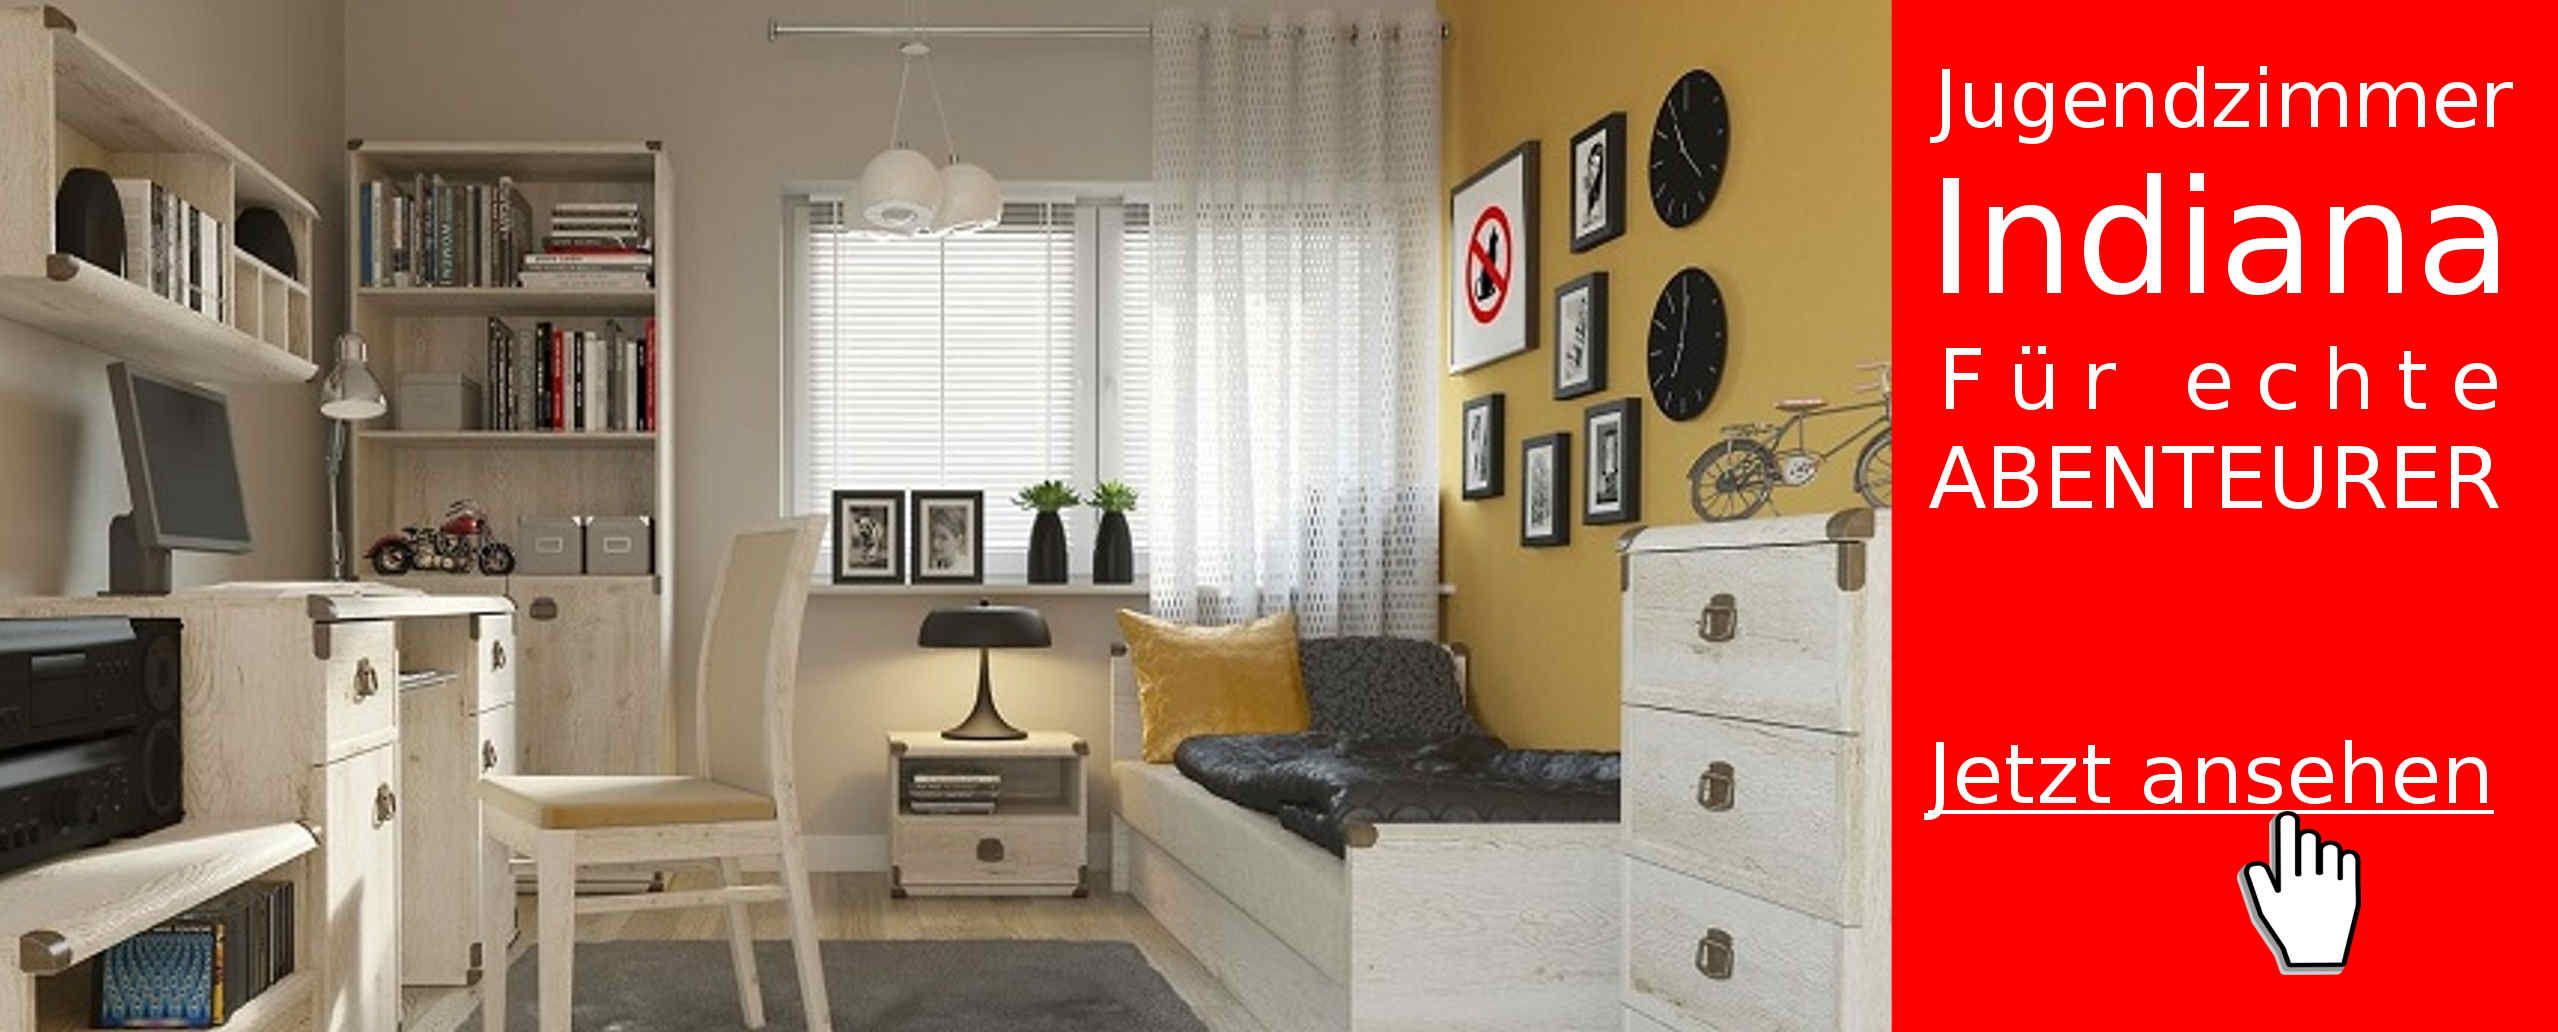 jugendzimmer indiana. Black Bedroom Furniture Sets. Home Design Ideas